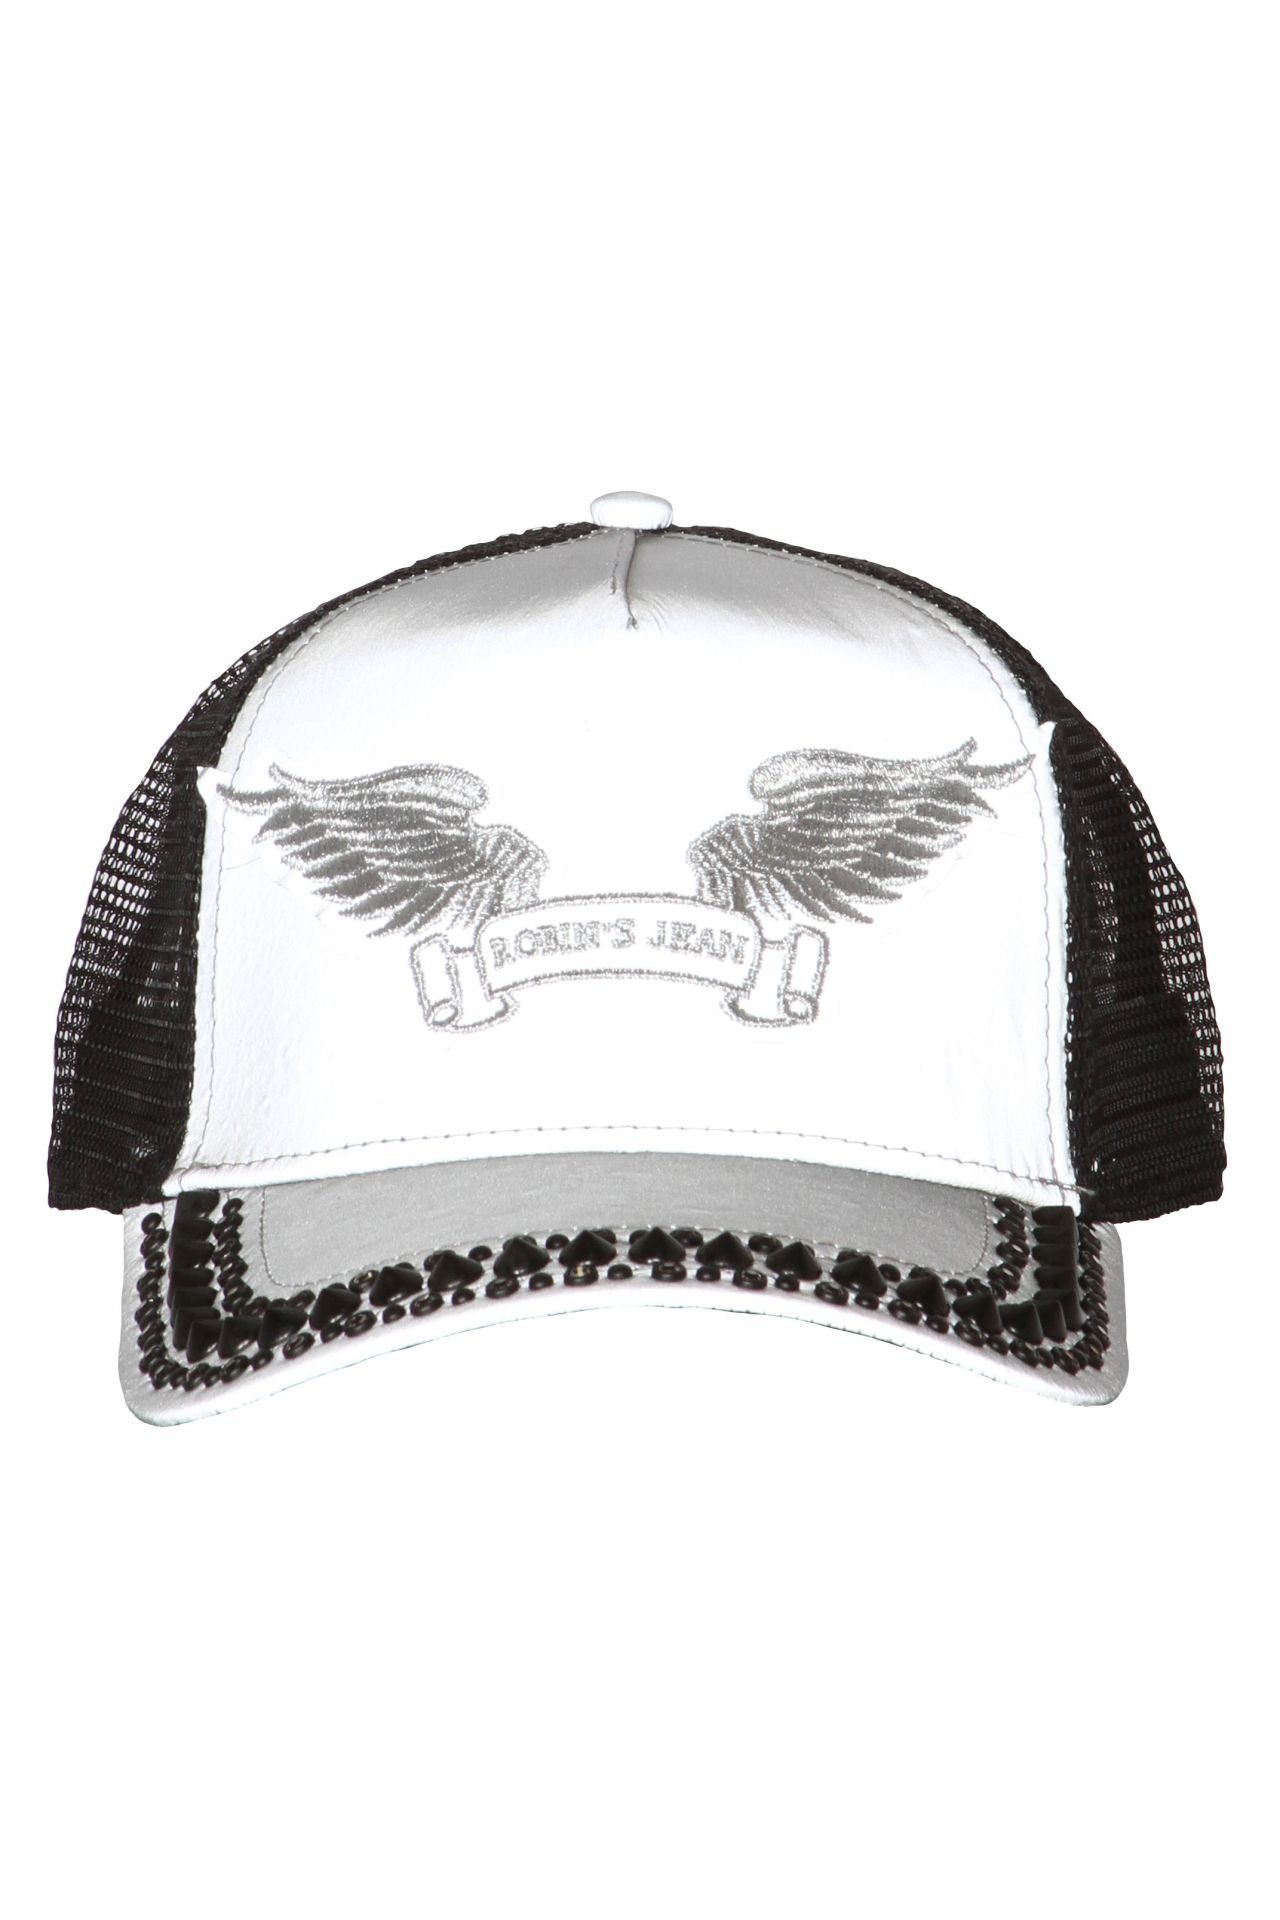 TRUCKER CAP IN REFLECTIVE GREY WITH CRYSTALS